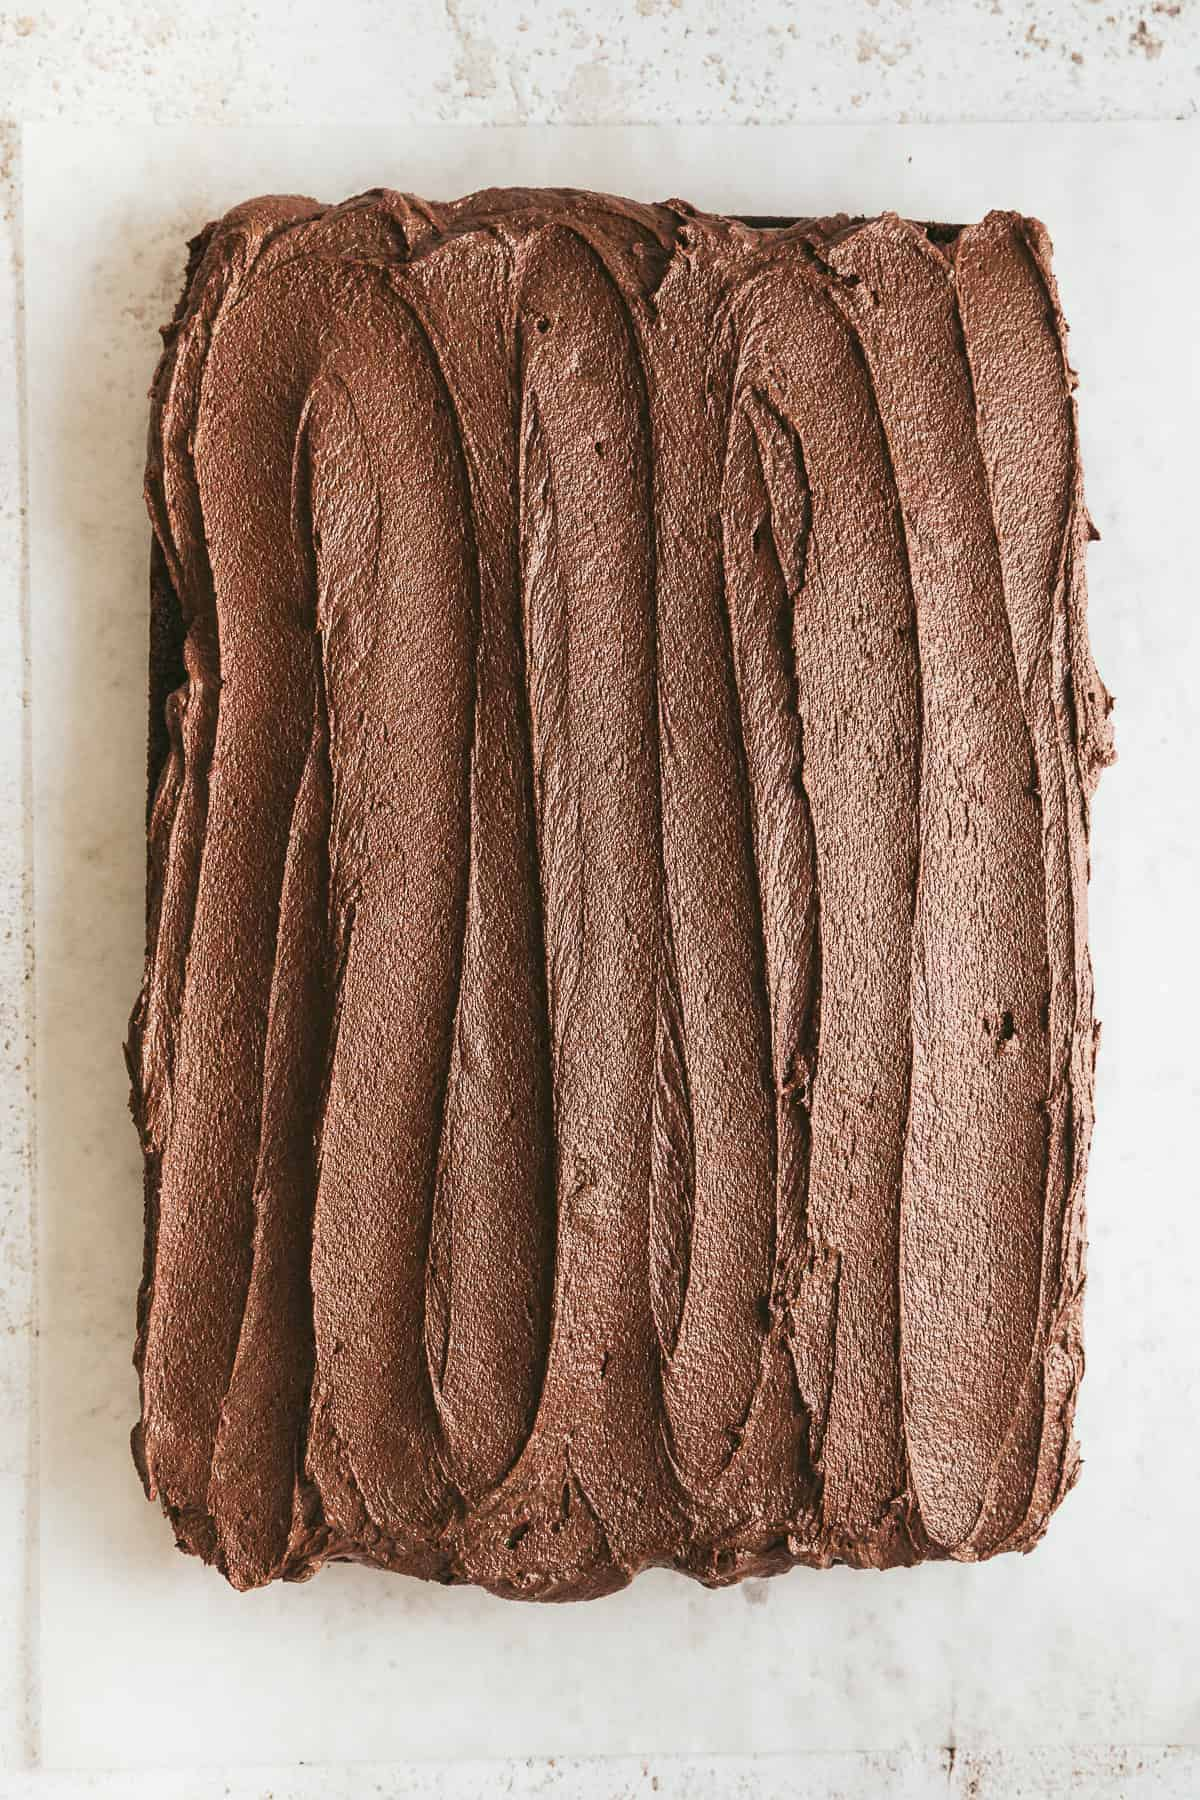 Chocolate buttercream icing on top of a cake.